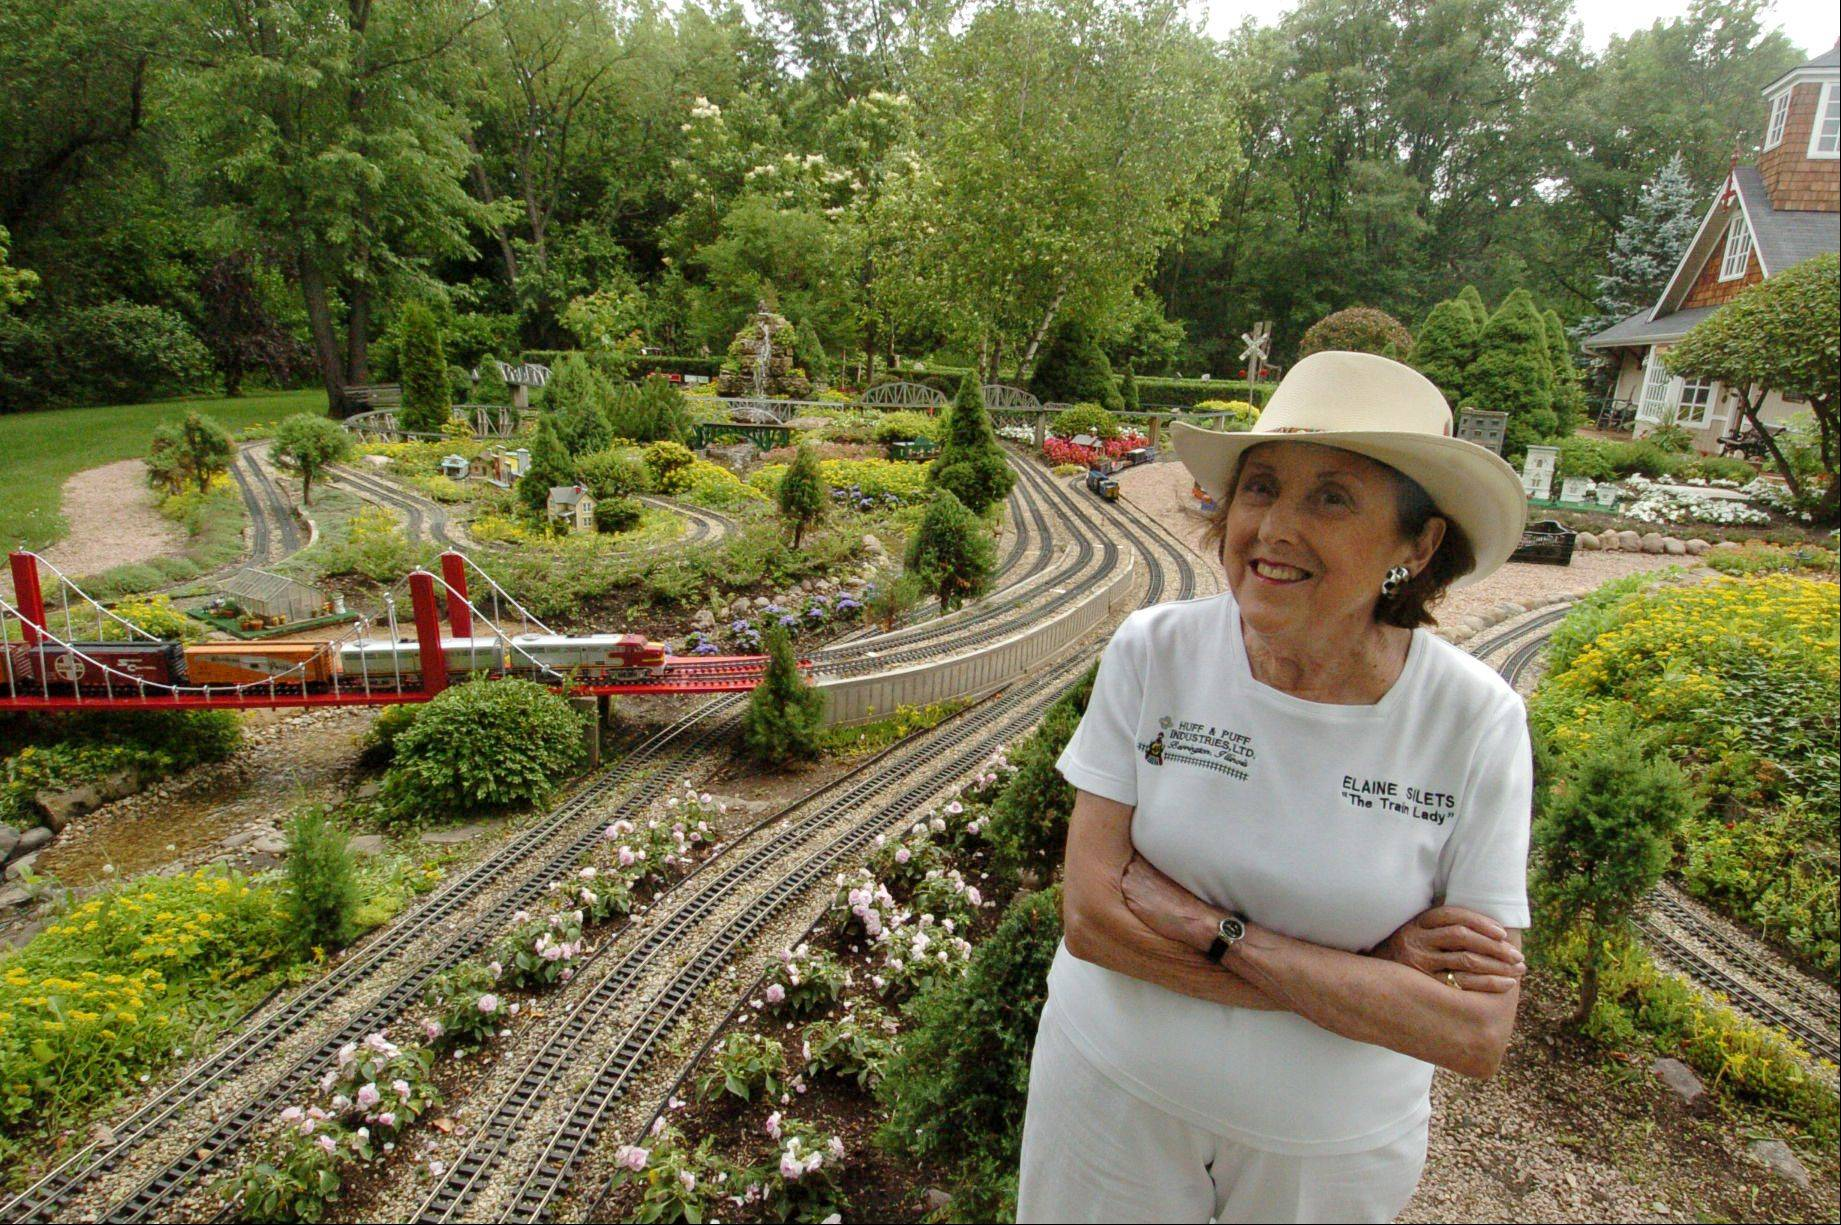 Elaine Silets and her garden railroad.